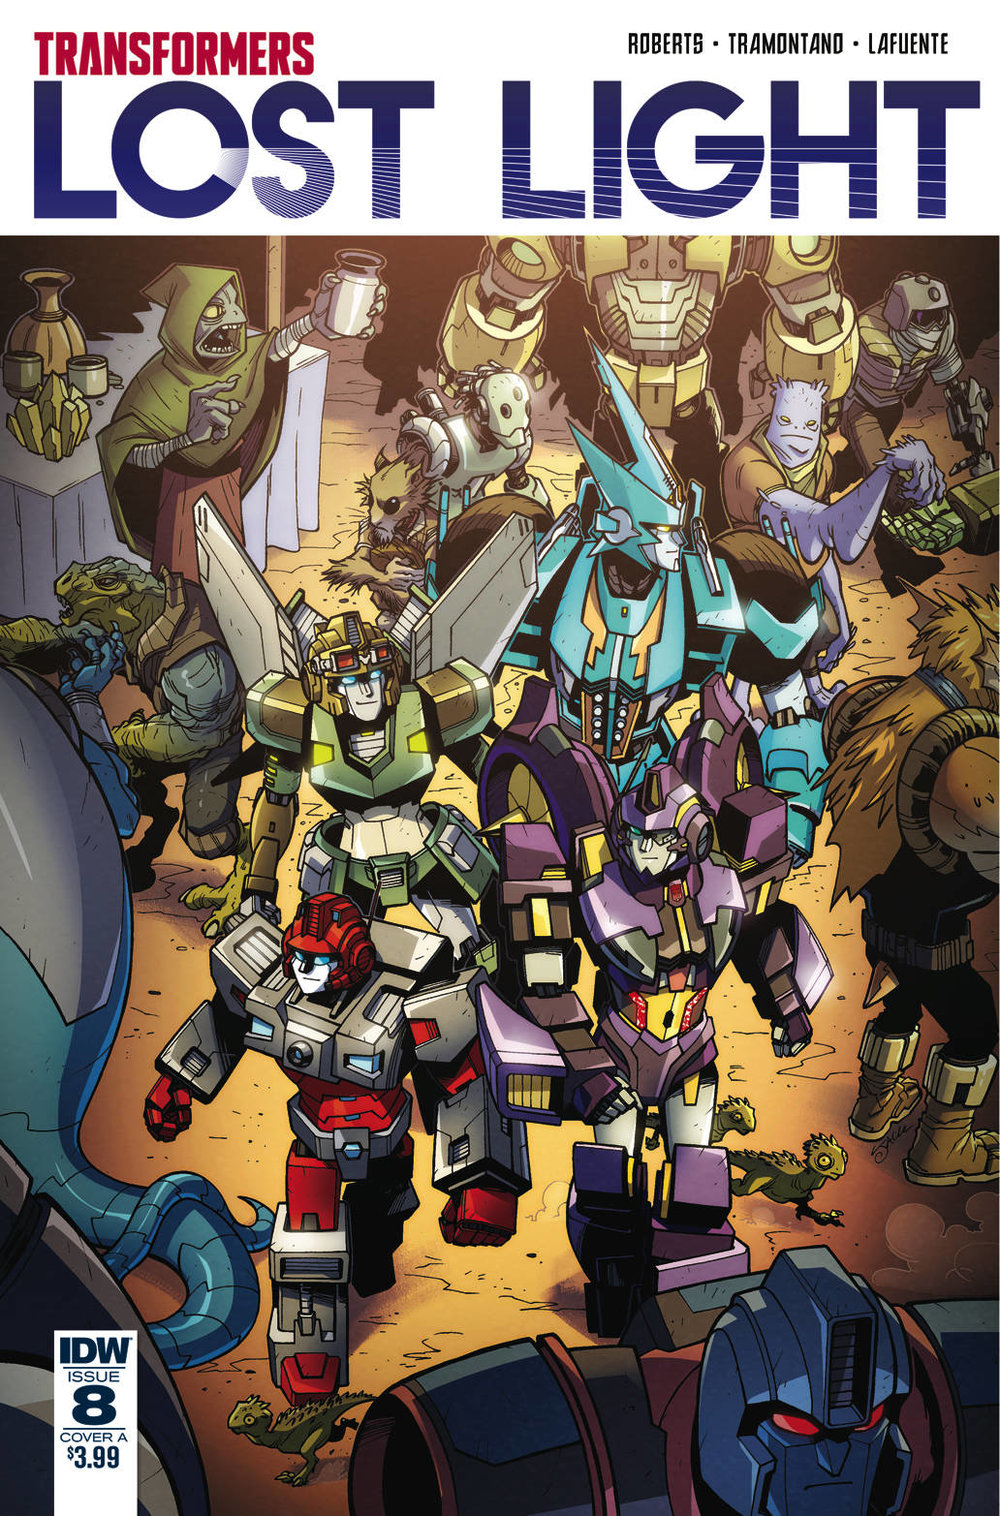 TRANSFORMERS LOST LIGHT 8 CVR A LAWRENCE.jpg